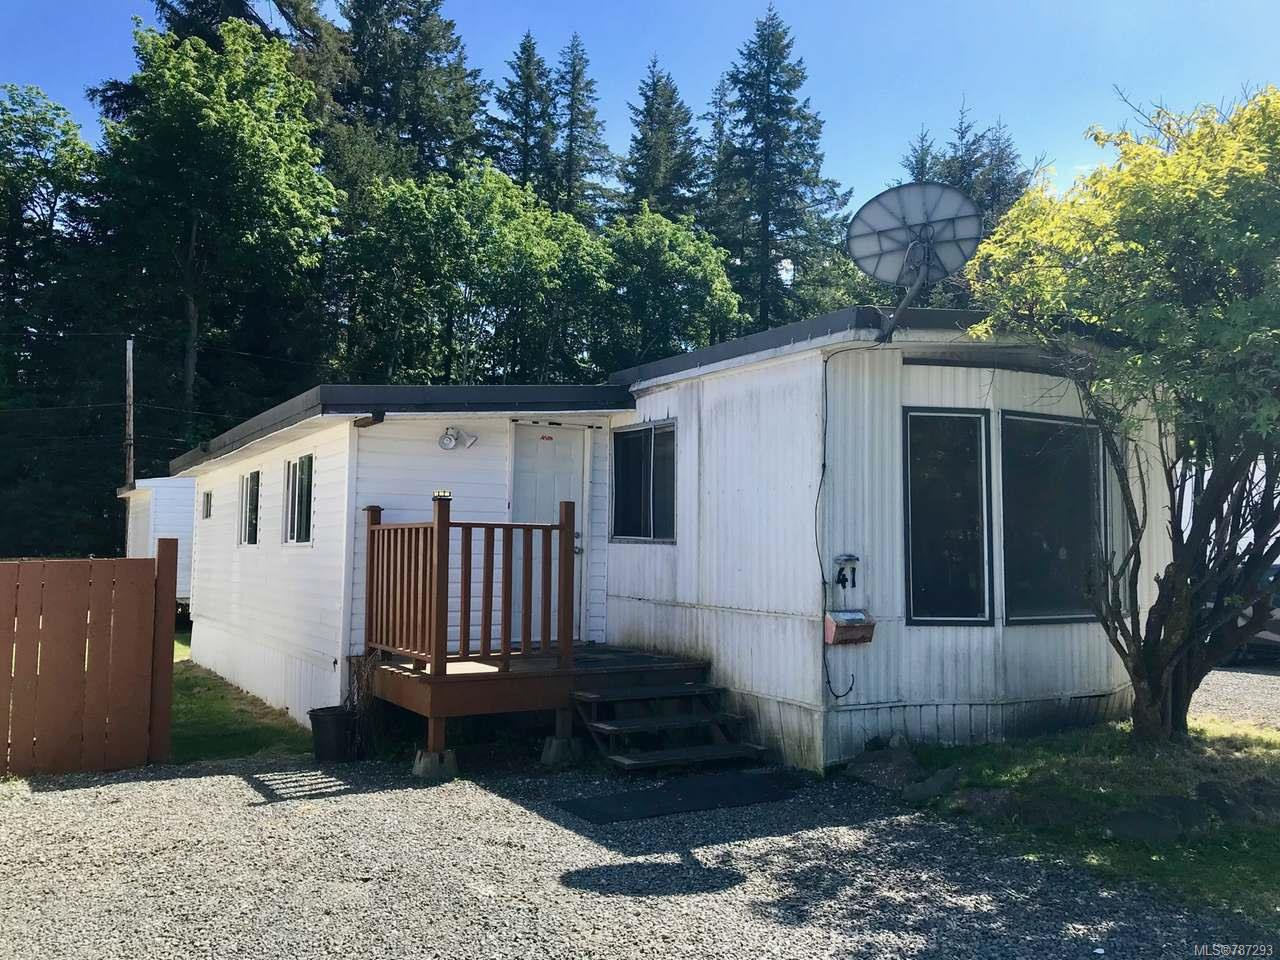 Main Photo: 41 2700 Woodburn Rd in CAMPBELL RIVER: CR Campbell River North Manufactured Home for sale (Campbell River)  : MLS®# 787293